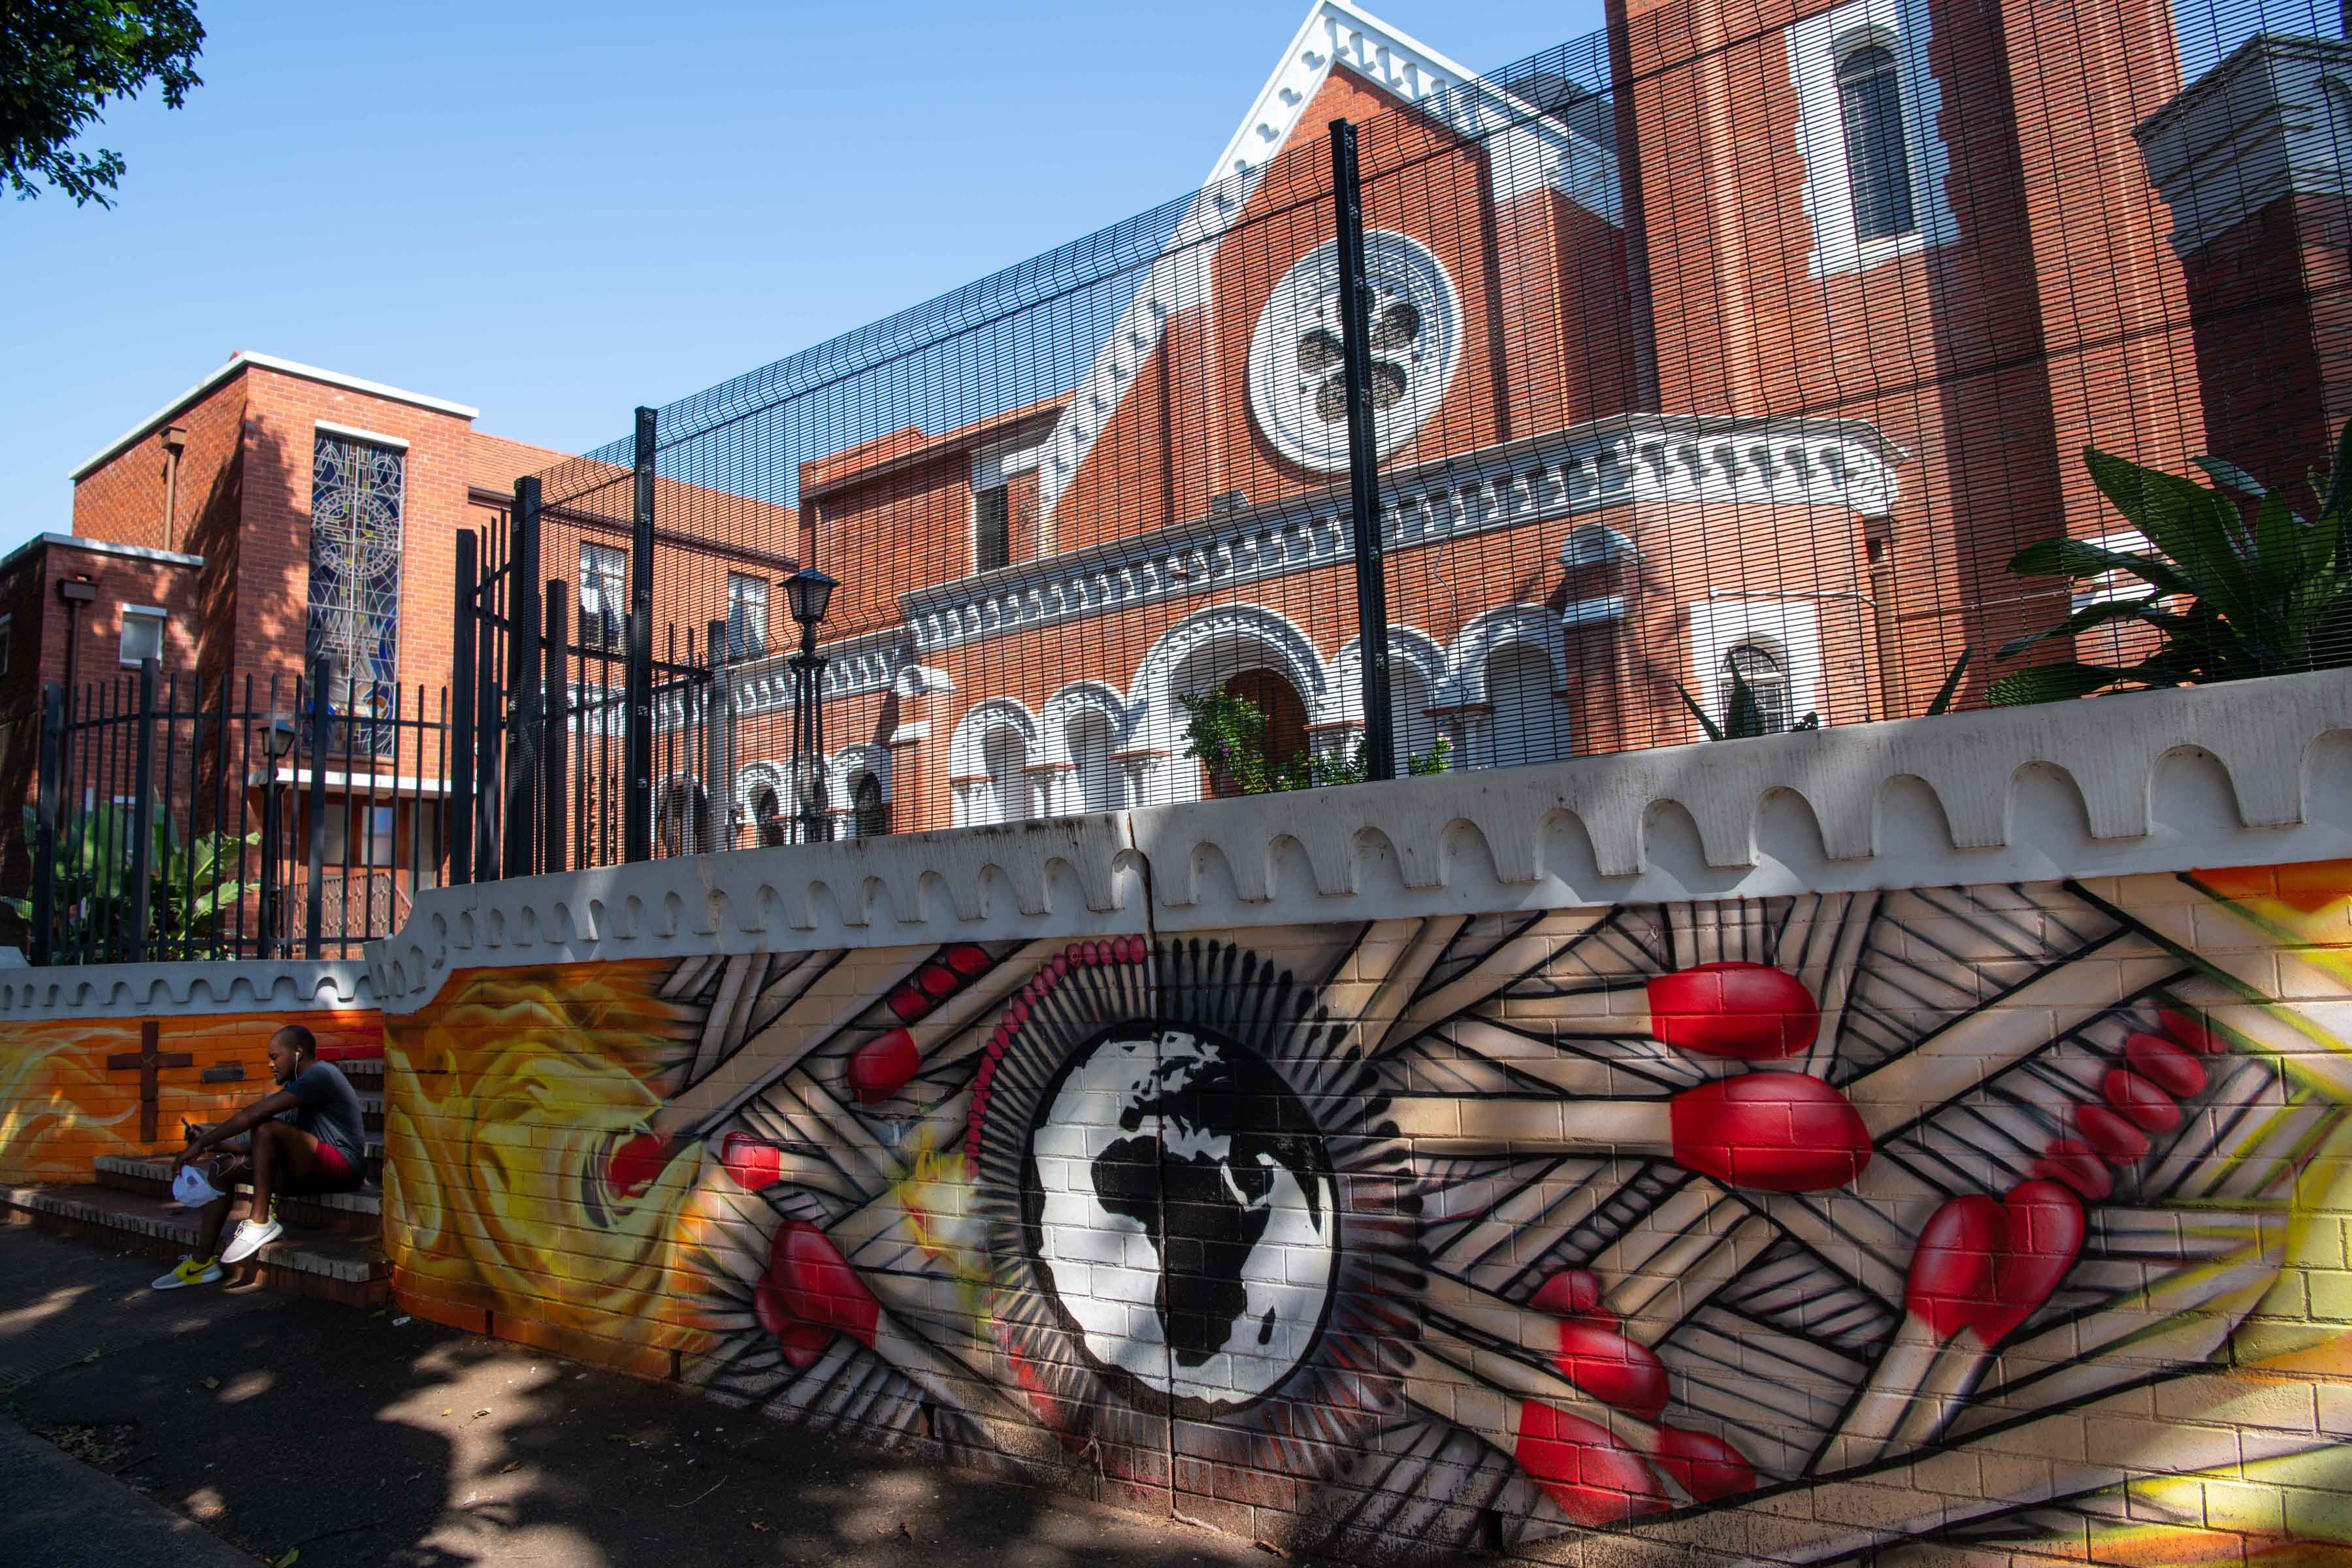 11 September 2019: Street artist Ewok was hired to create a mural on the perimeter wall of the church, which is a heritage site, creating outrage in the community.